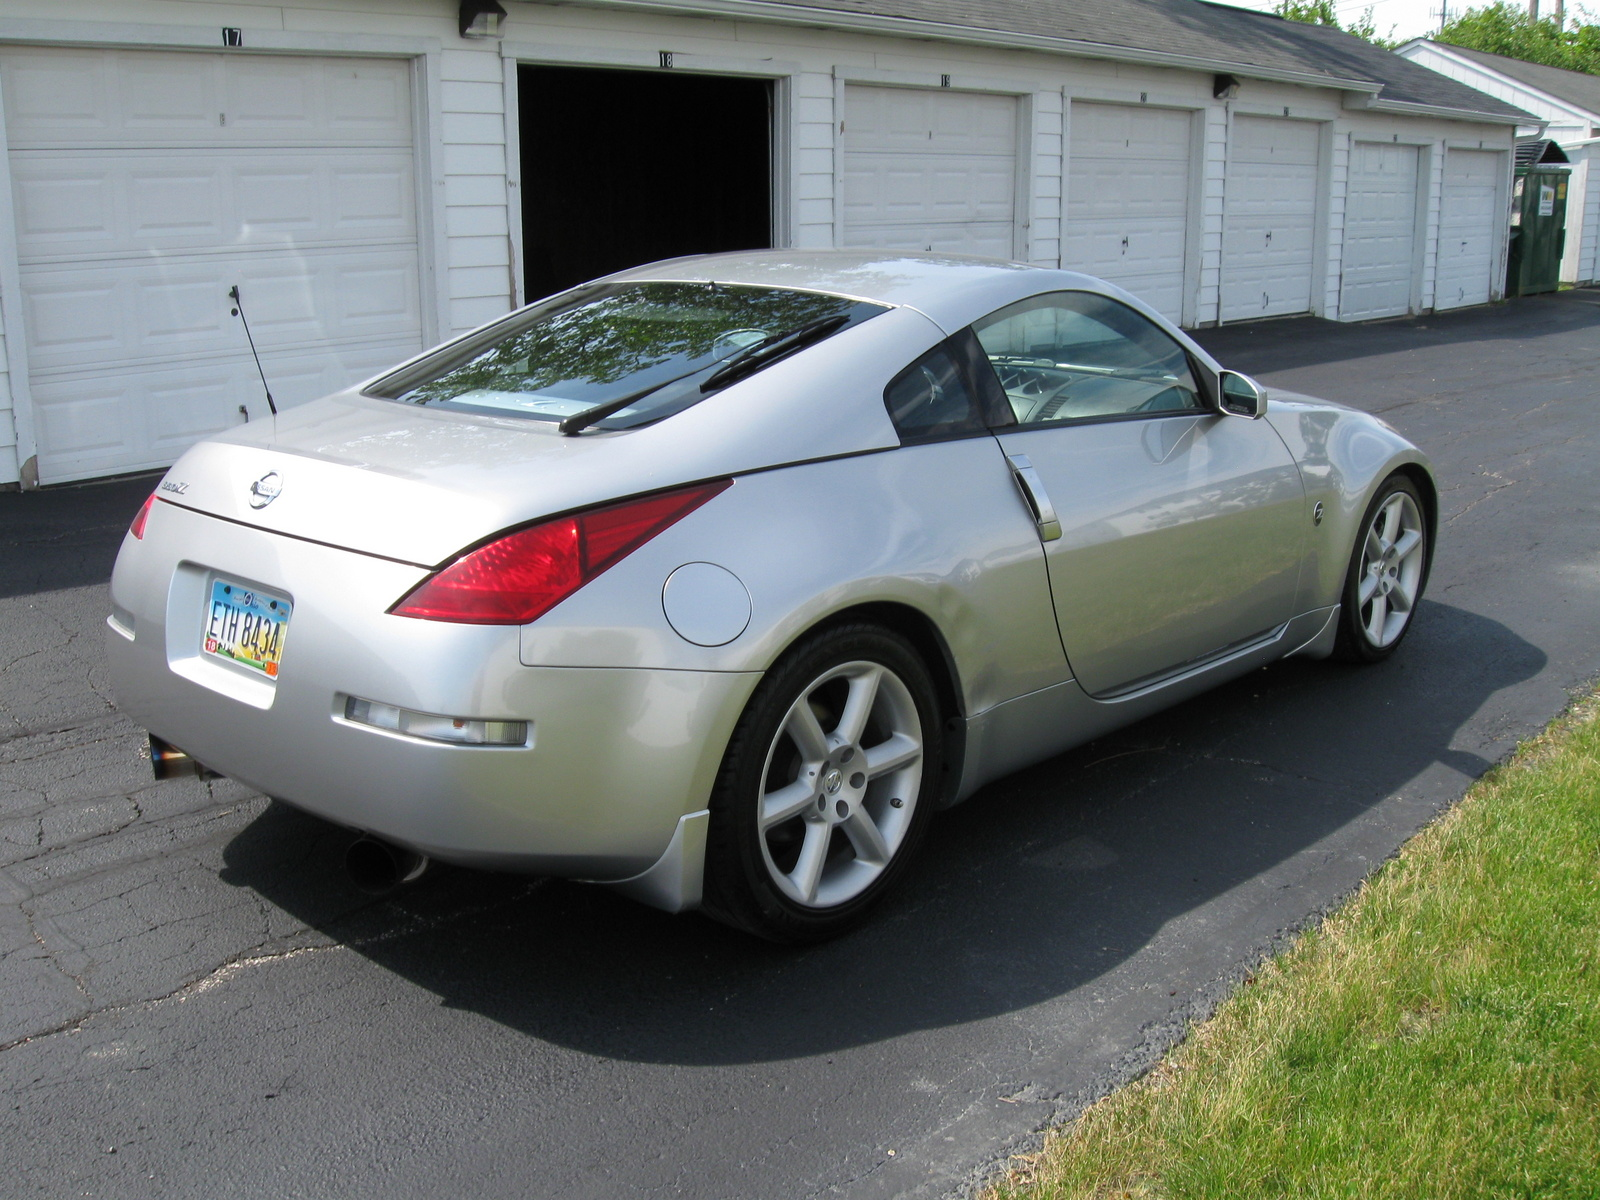 350Z Y-Pipe Back Exhaust Shop Enjuku Racing Today Nissan 350 z pictures